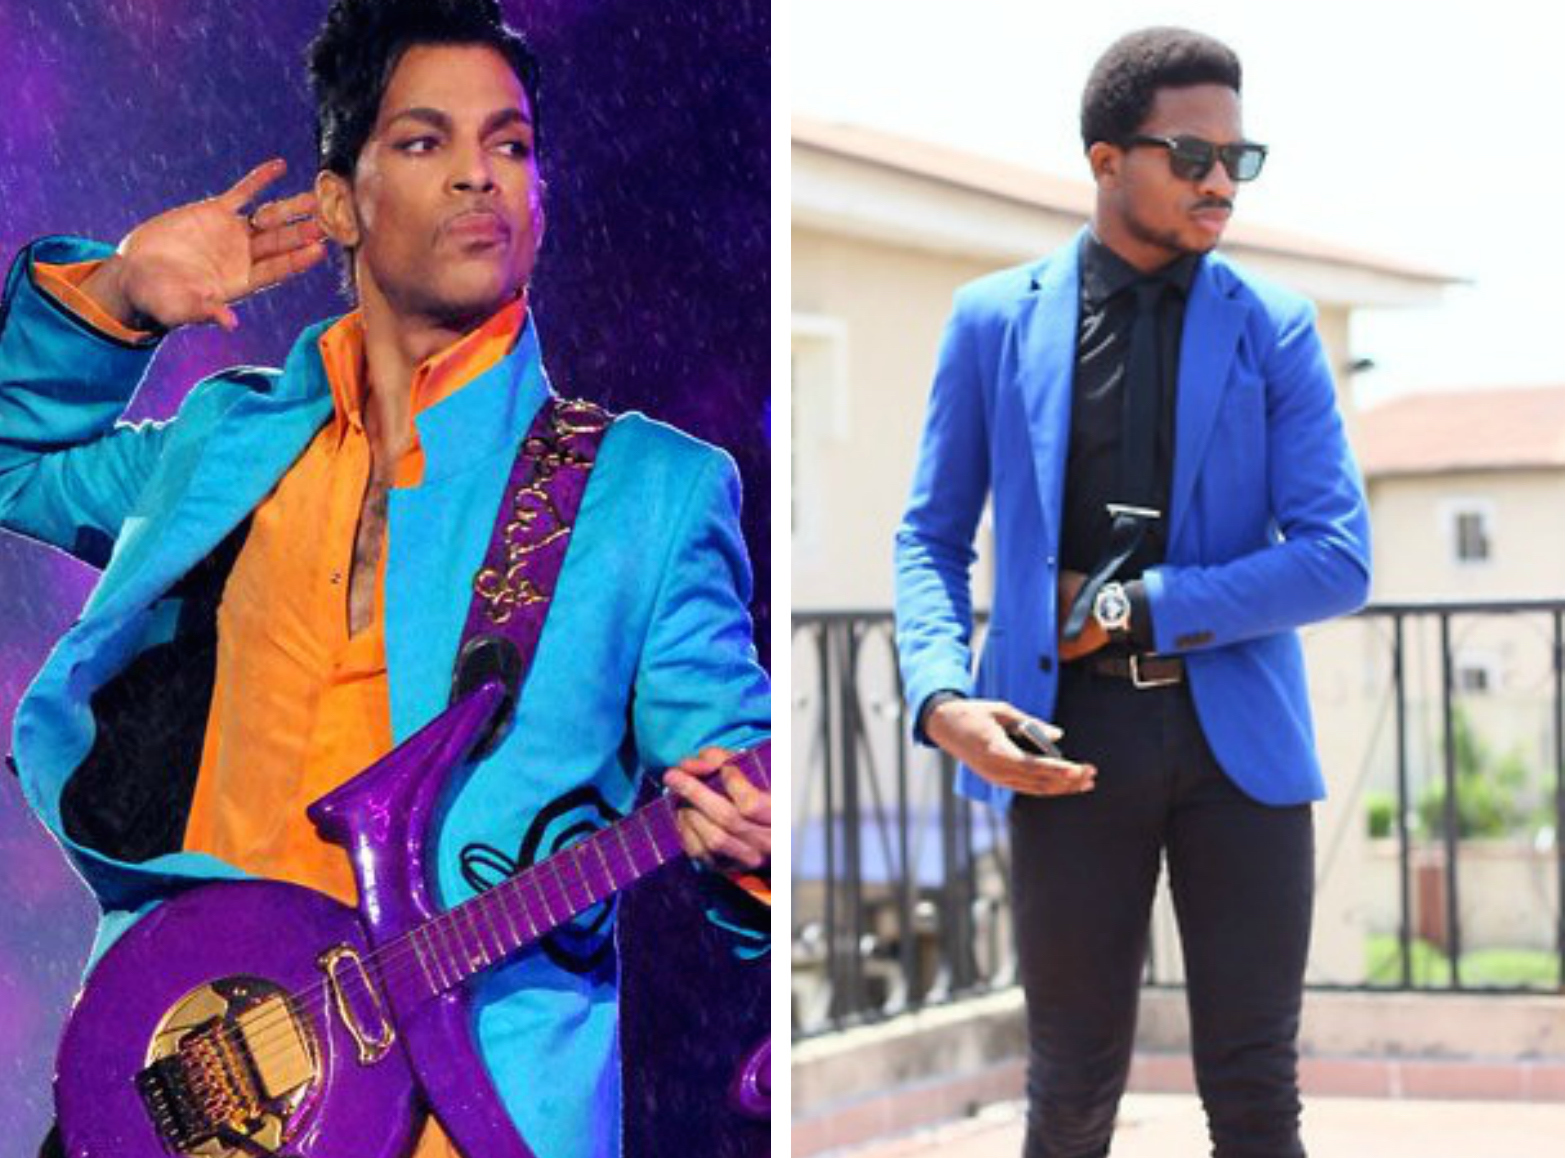 """From left to right:Prince wearing a bright blue suit jacket while preforming his song """"Purple Rain,"""" and a n eon blue blazer by Orange Culture."""